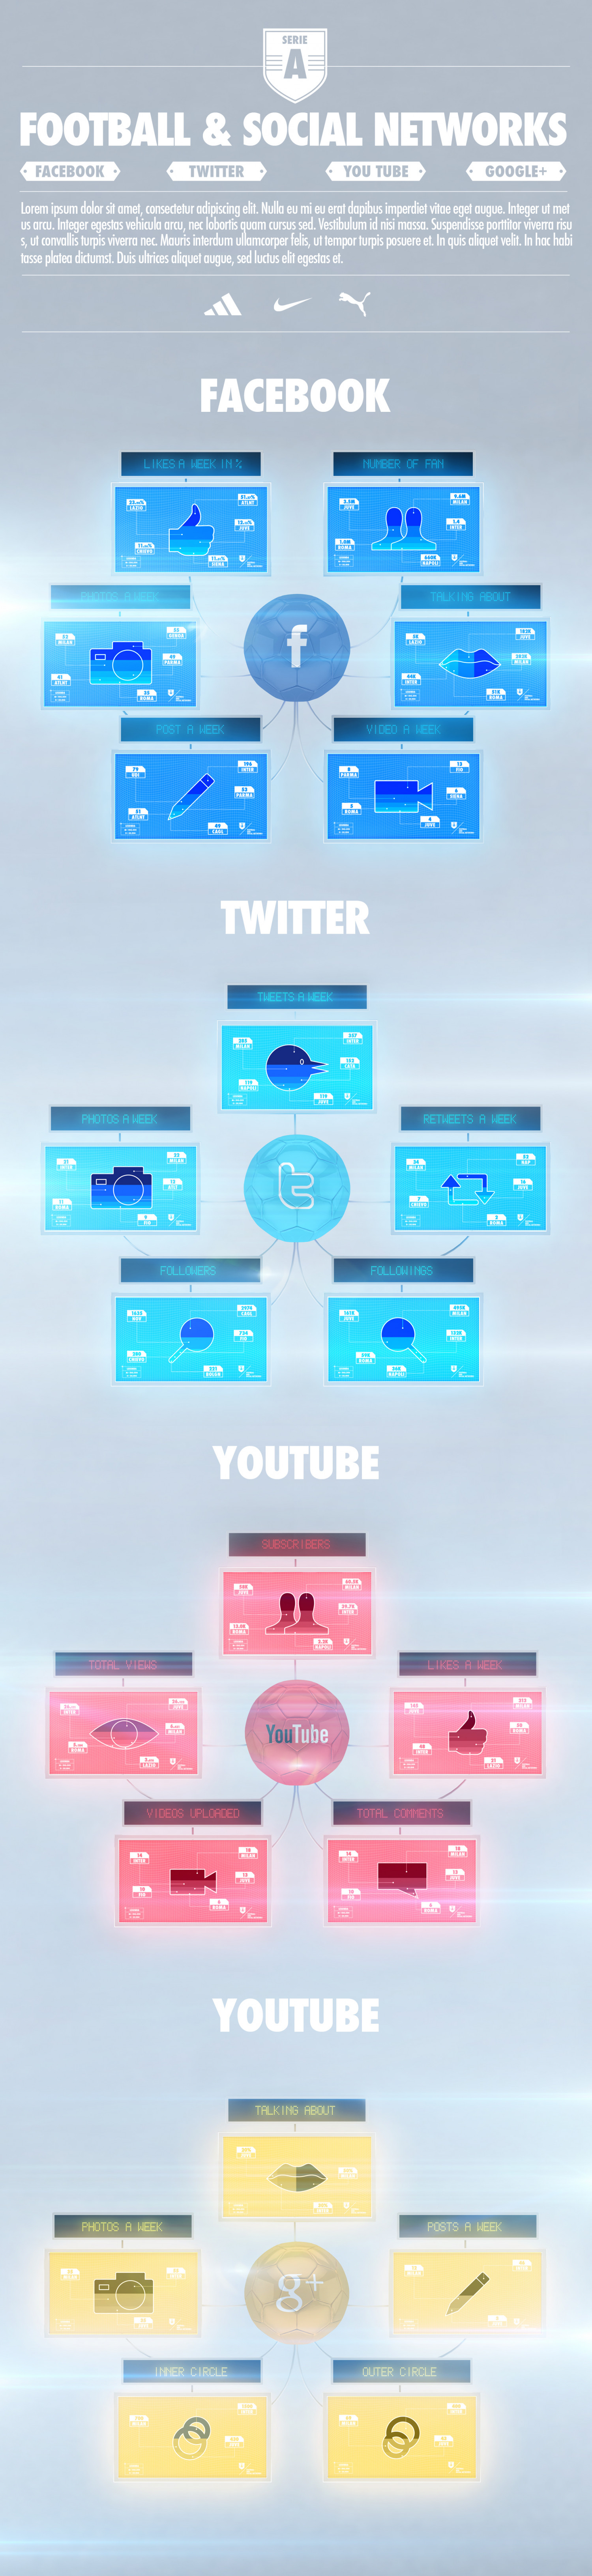 Social Media and Football - 3d Infographic Concept Infographic